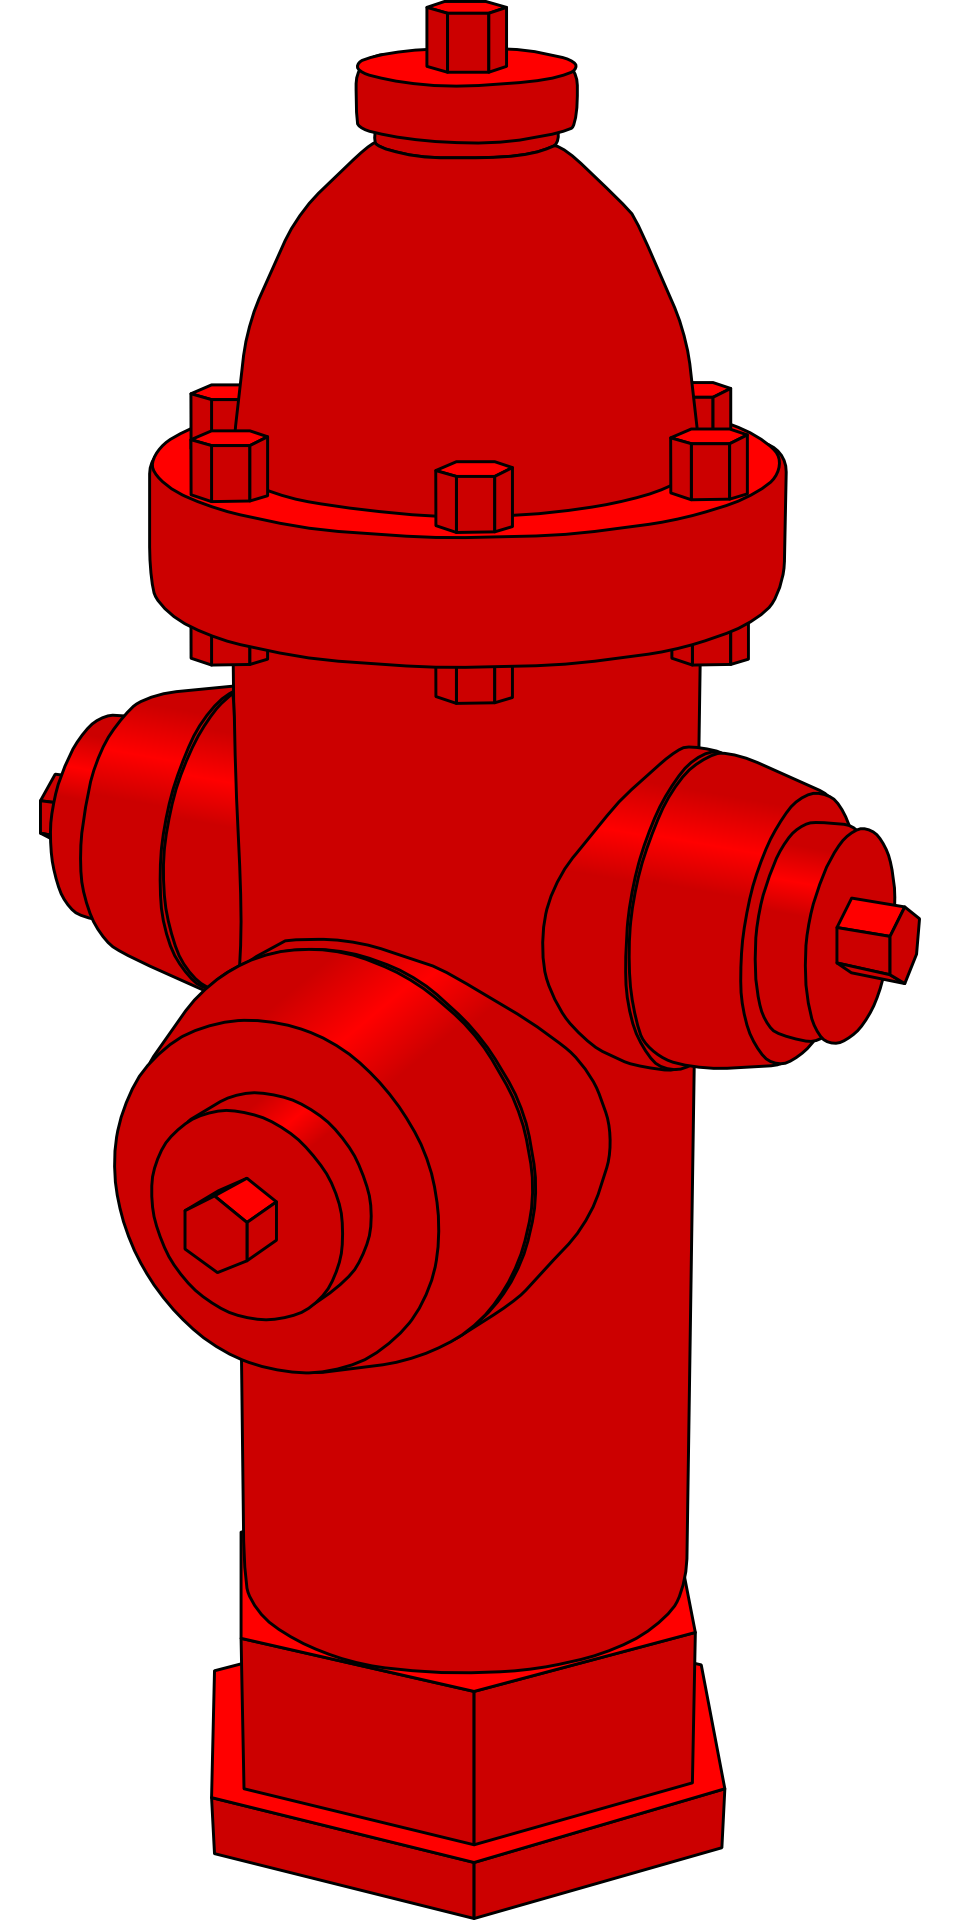 Fire Hydrant Png Image Fire Hydrant Hydrant Fire